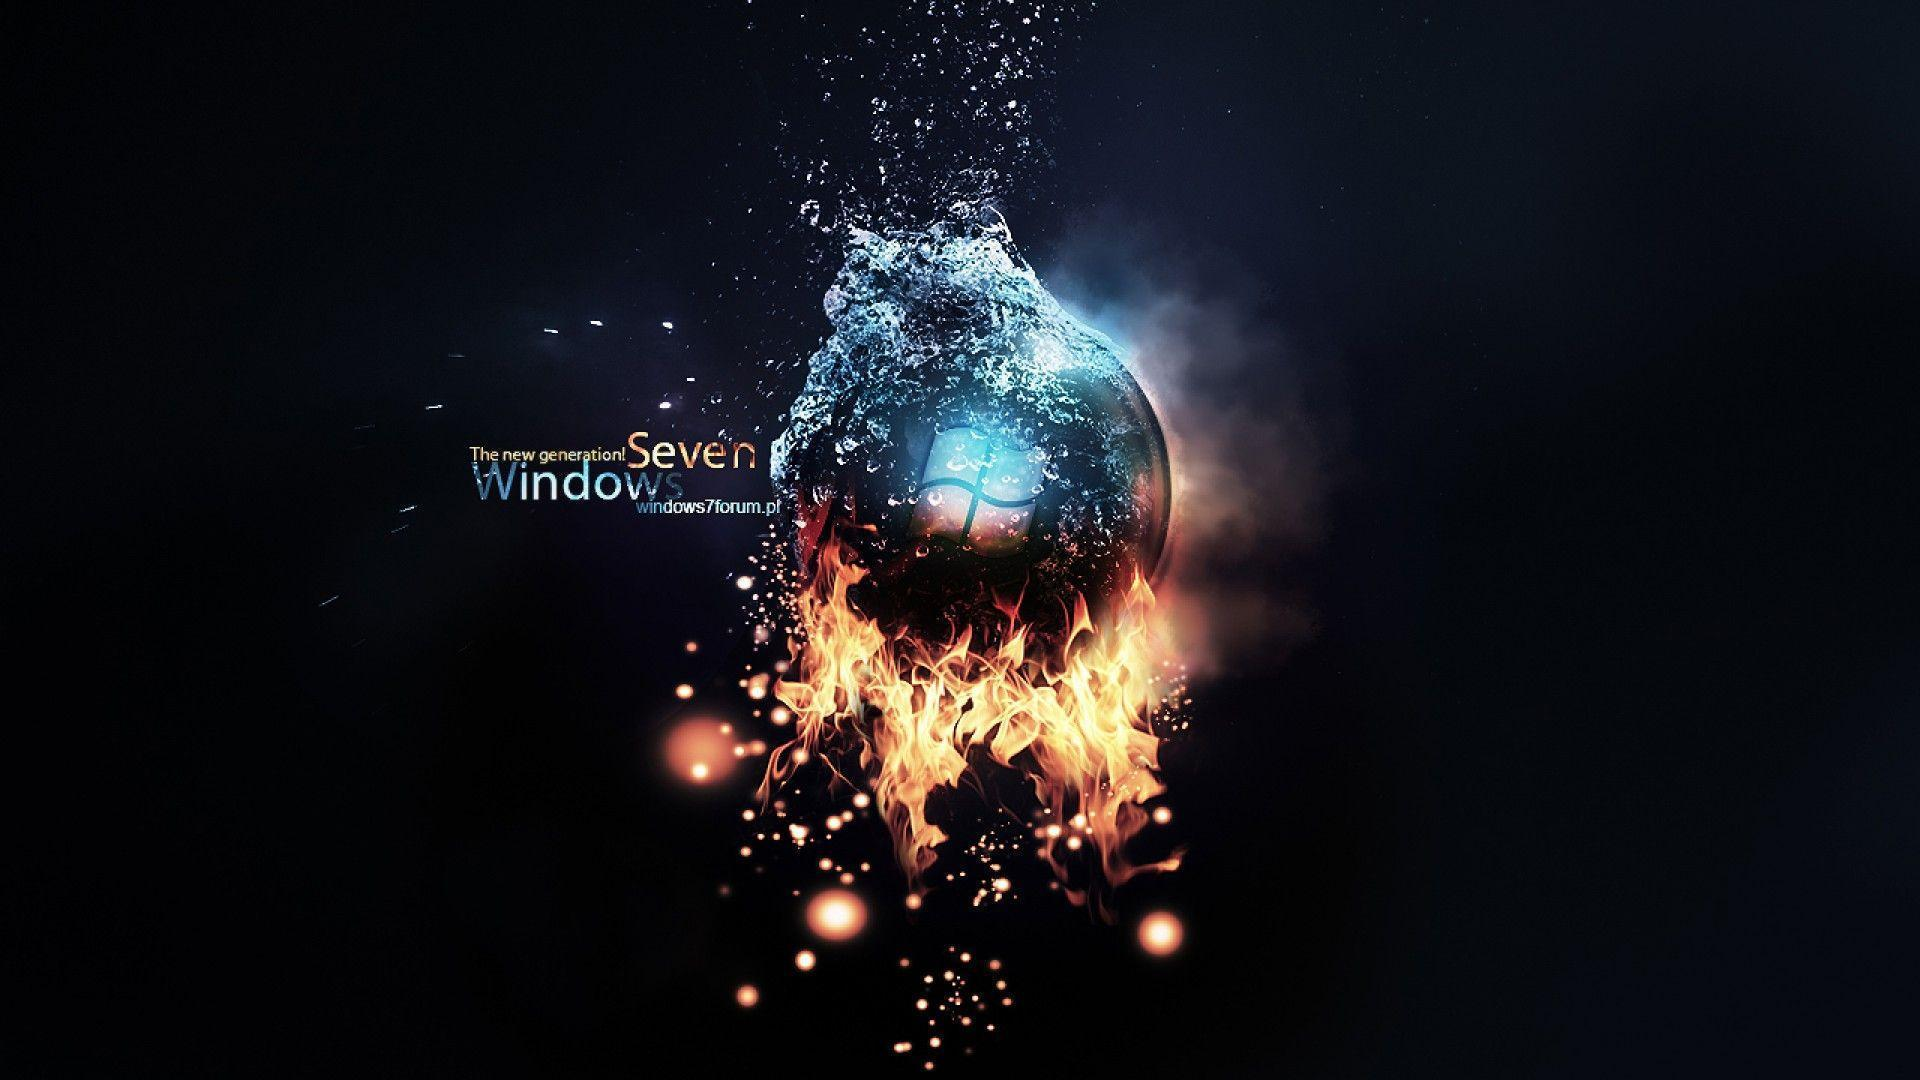 10 New Windows 8 Wallpaper Hd 3d For Desktop Full Hd 1920: Windows 7 Wallpapers 1920x1080